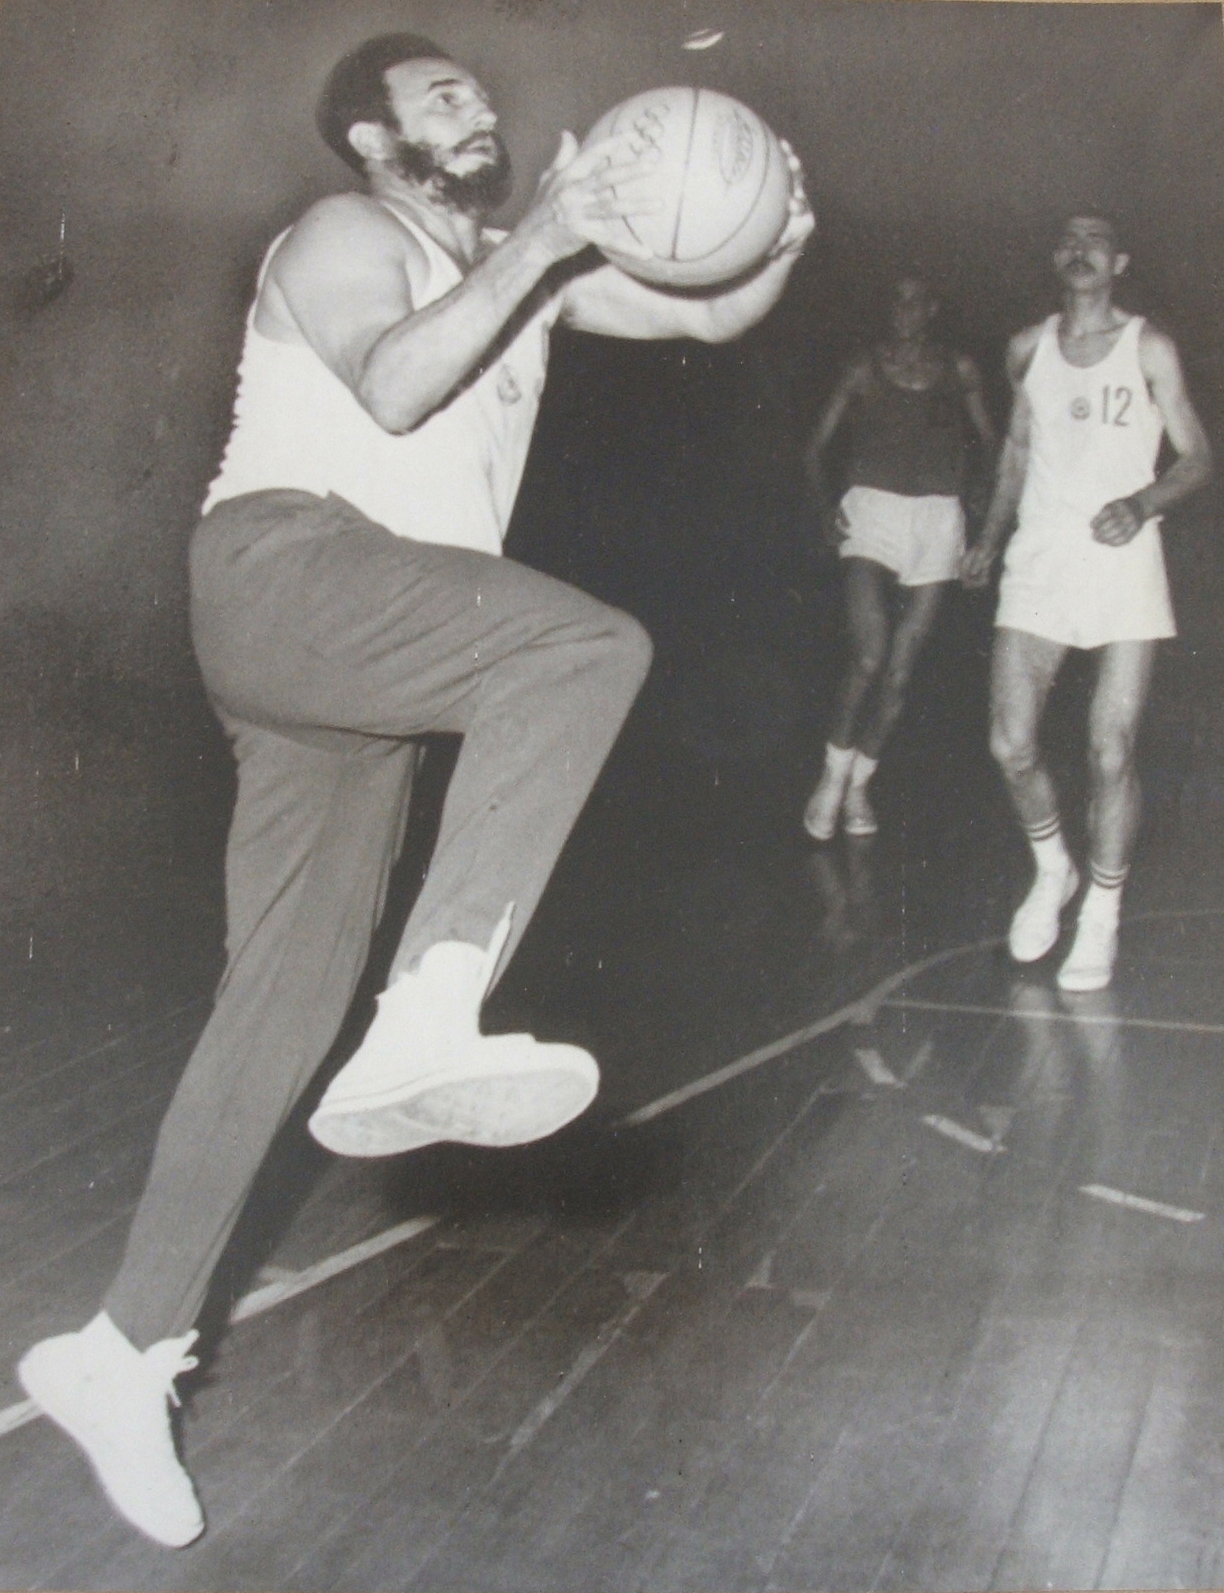 Photograph of Fidel Castro Playing Basketball